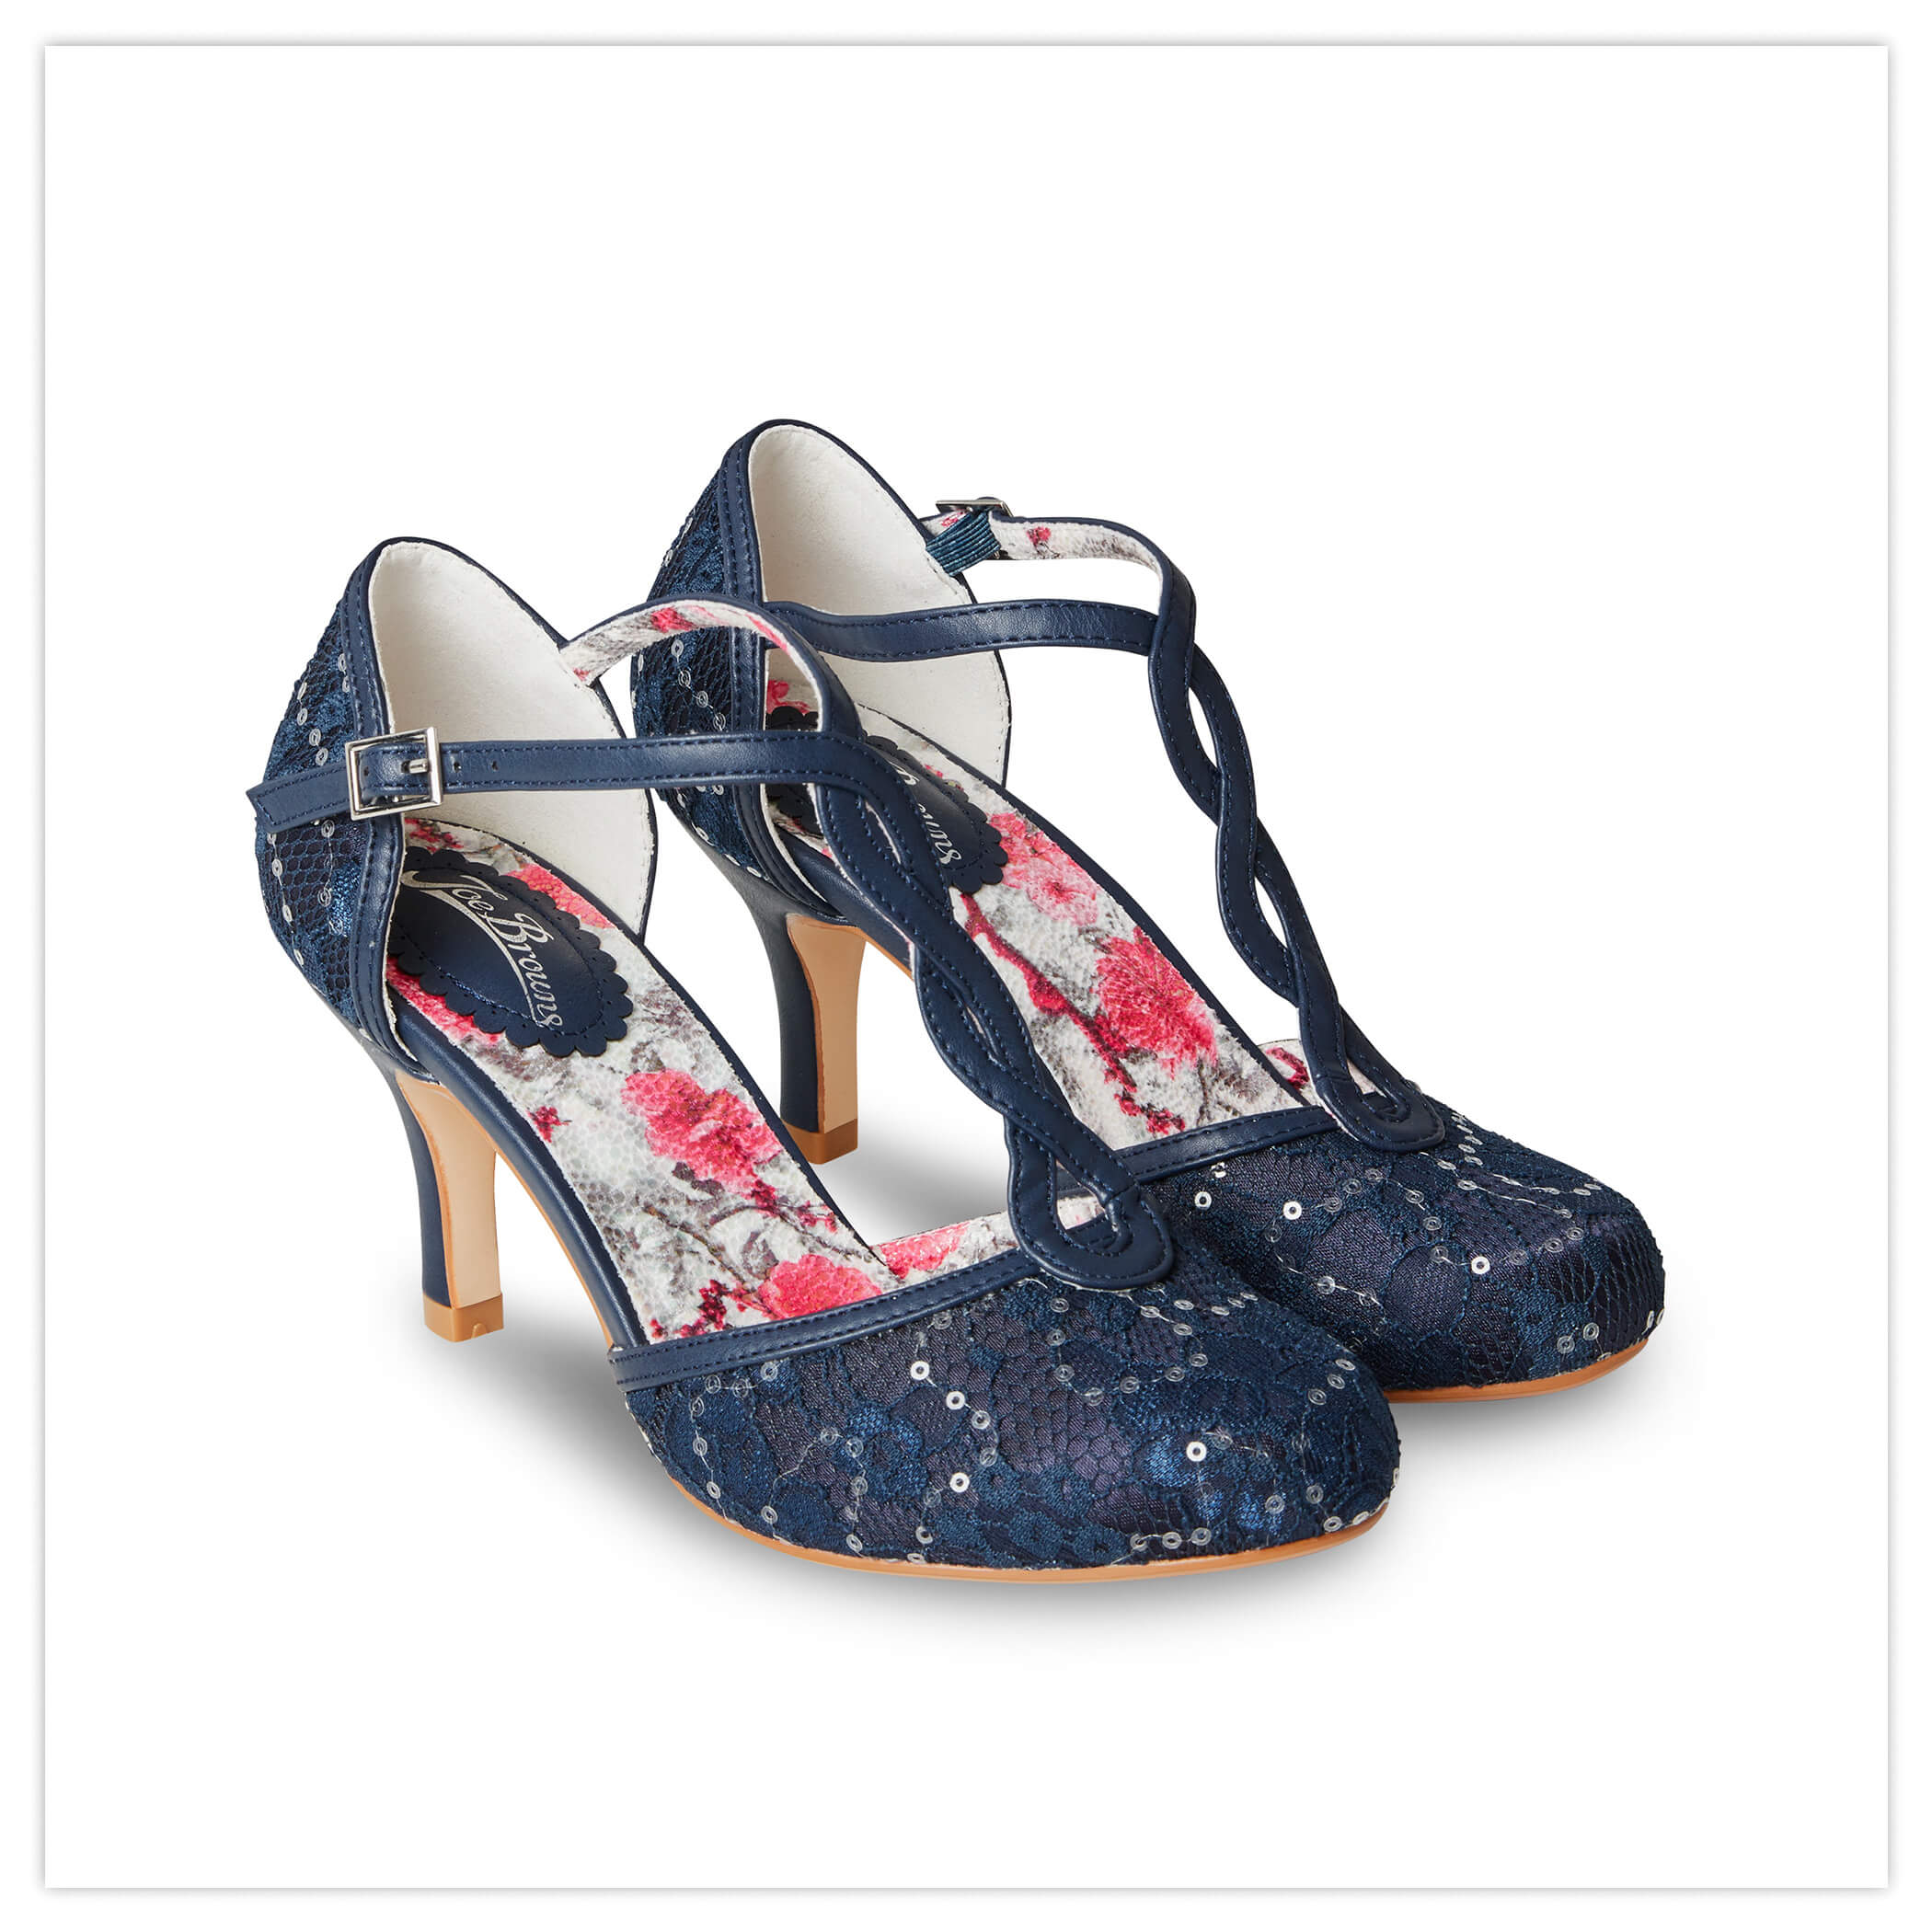 MOONLIT LACE TBAR SHOES